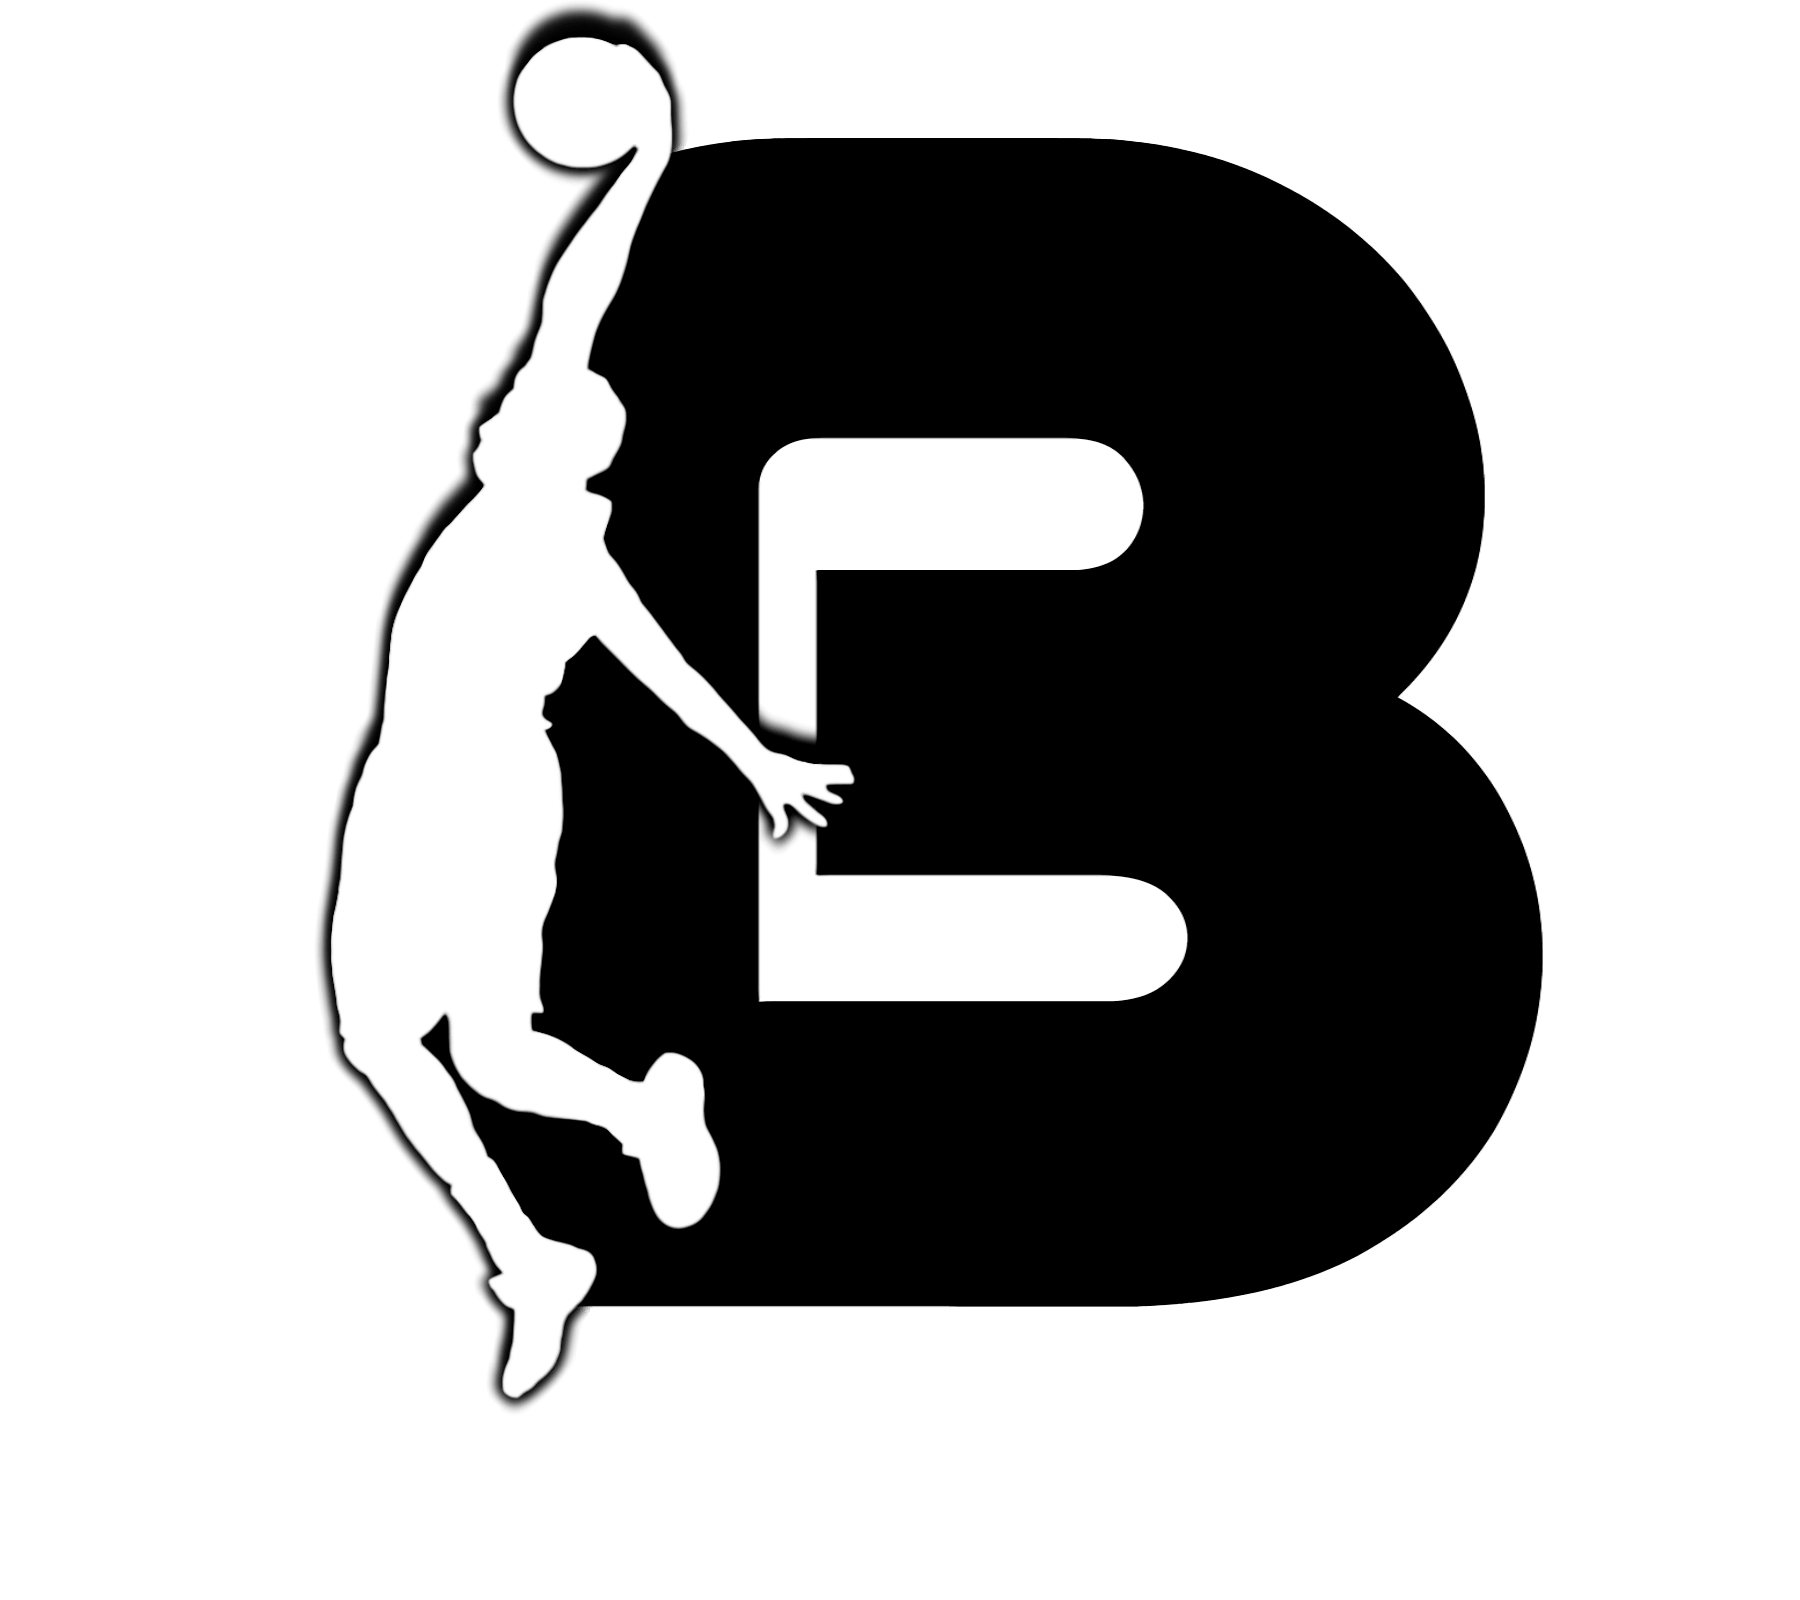 Basketball clipart black and white word with laces graphic black and white download Best Basketball Shoes Reviews: WOW! See TOP Shoes The EXPERTS Rate ... graphic black and white download